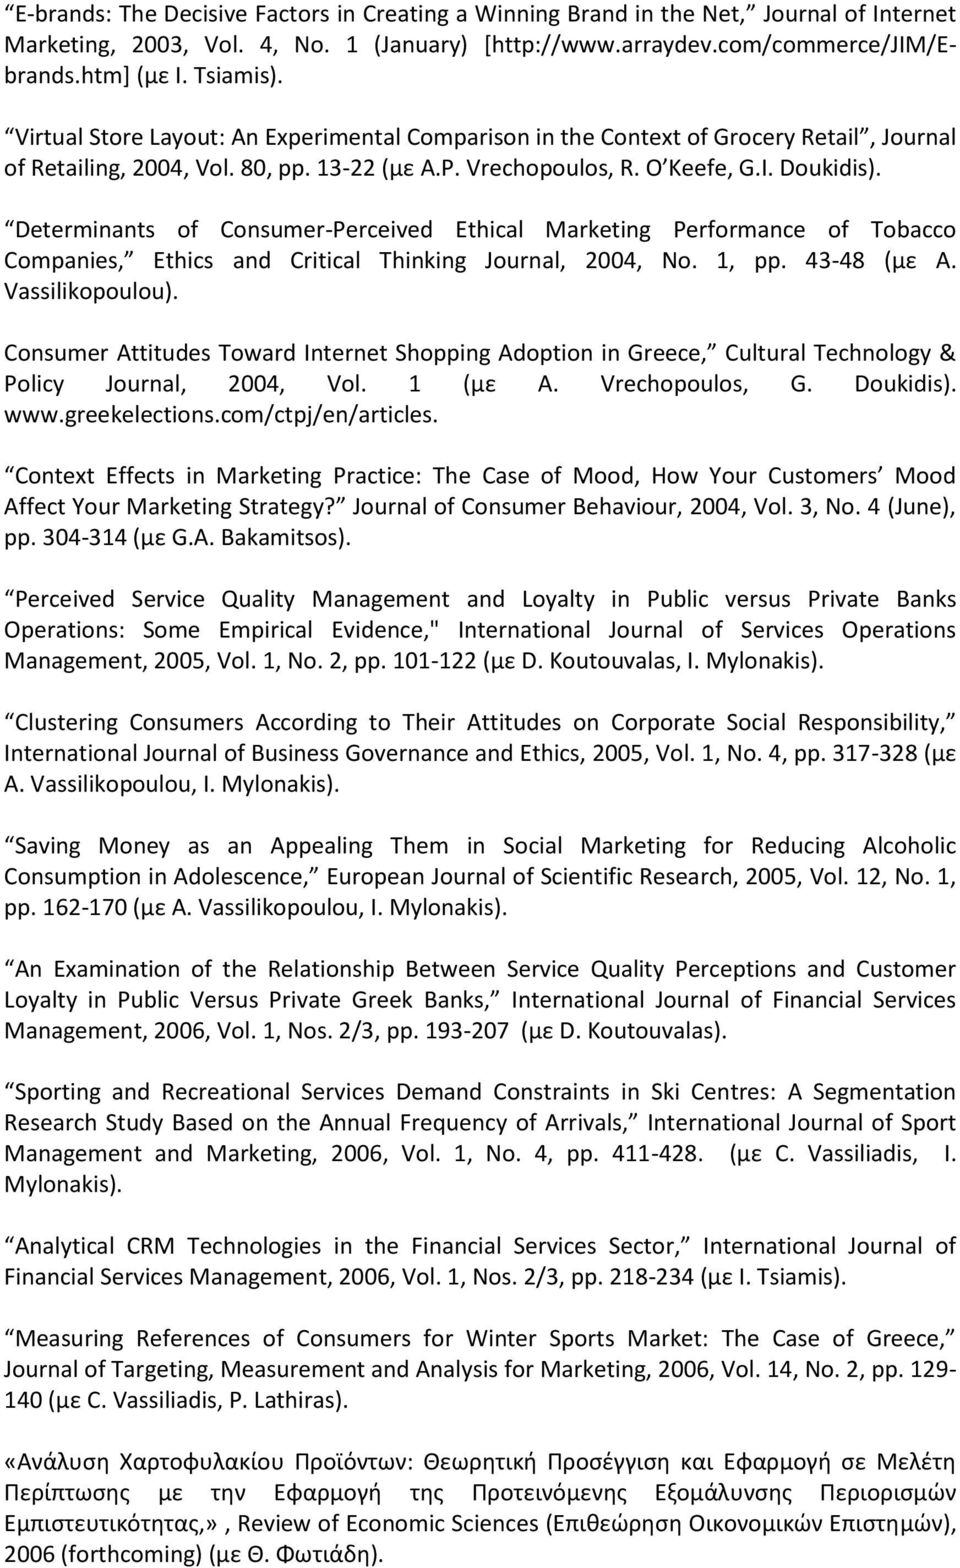 Determinants of Consumer-Perceived Ethical Marketing Performance of Tobacco Companies, Ethics and Critical Thinking Journal, 2004, No. 1, pp. 43-48 (με Α. Vassilikopoulou).